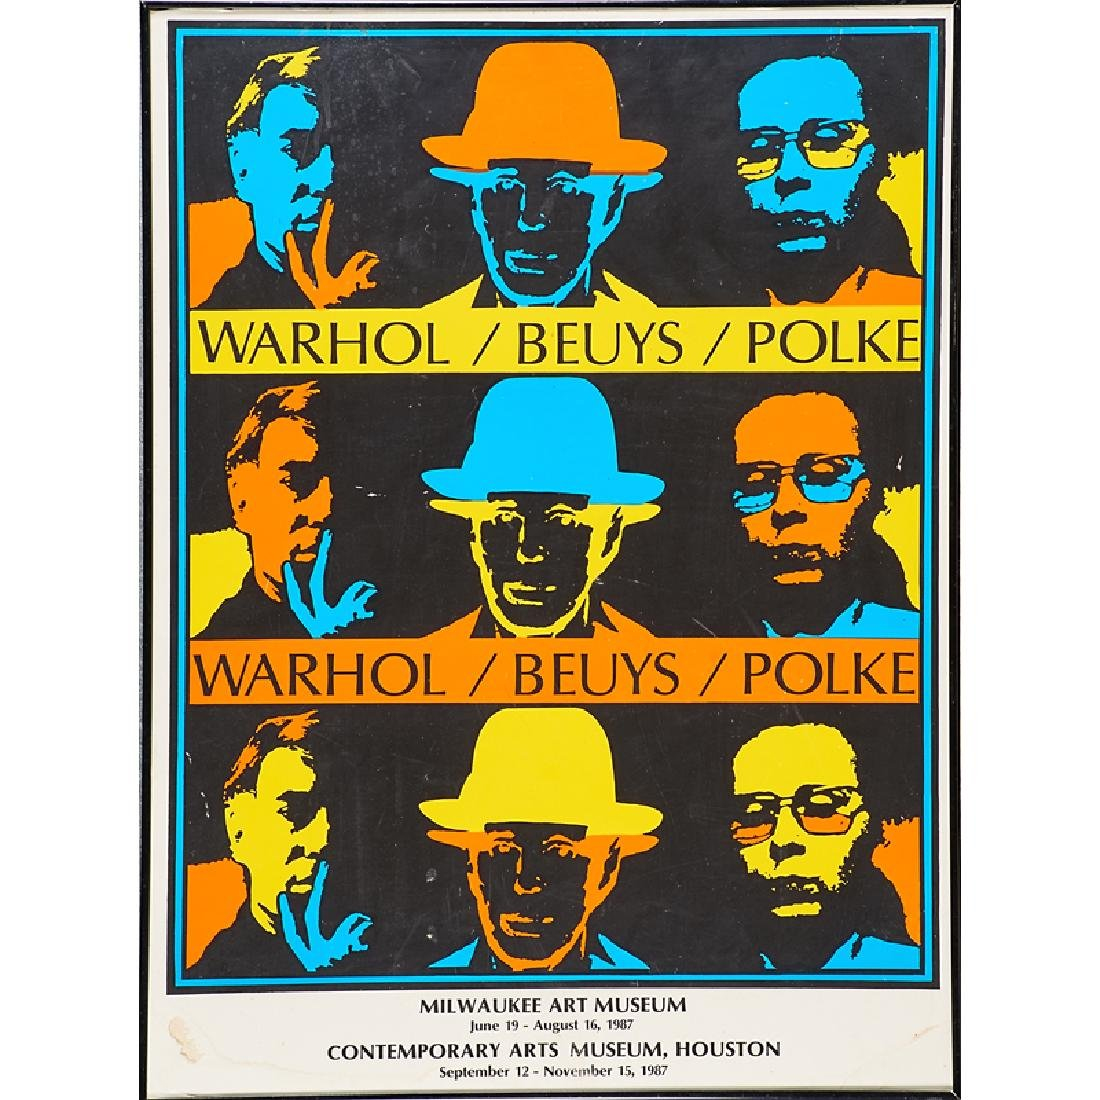 WARHOL / BEUYS / POLKE EXHIBITION POSTER